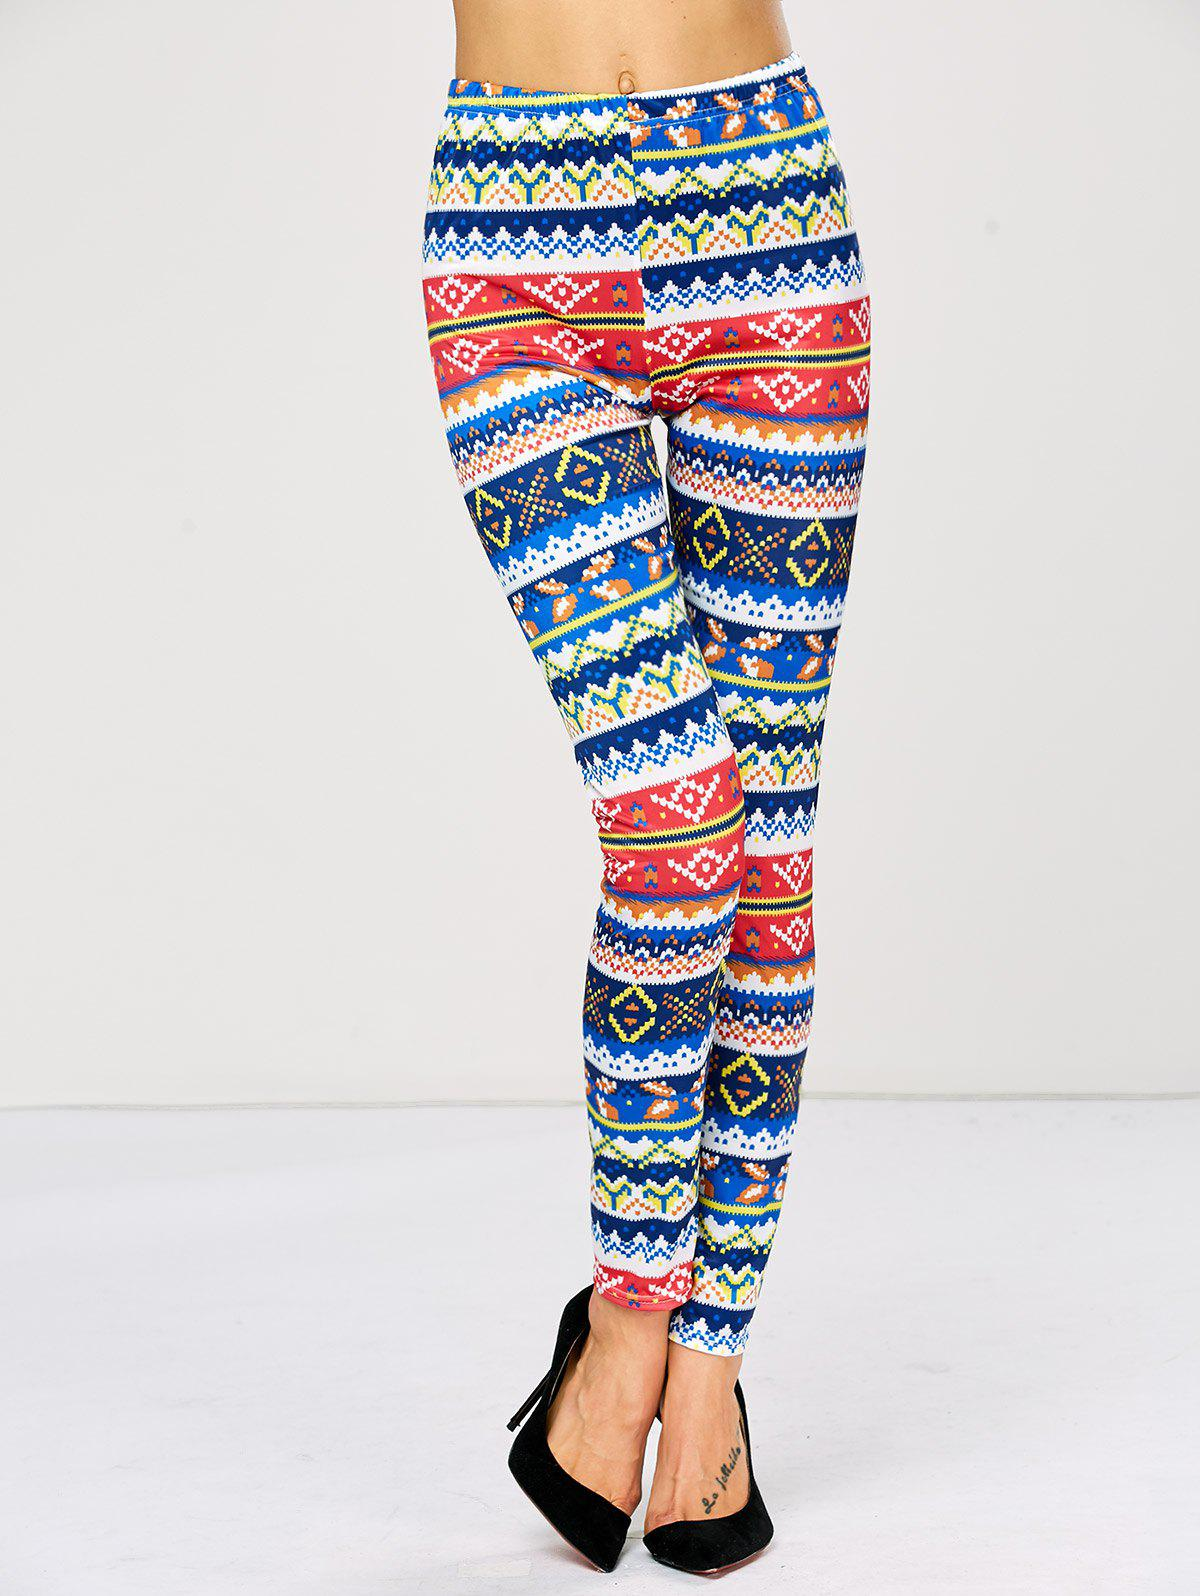 Sale Strench Color Block Patterned Bodycon Aztec Print Leggings